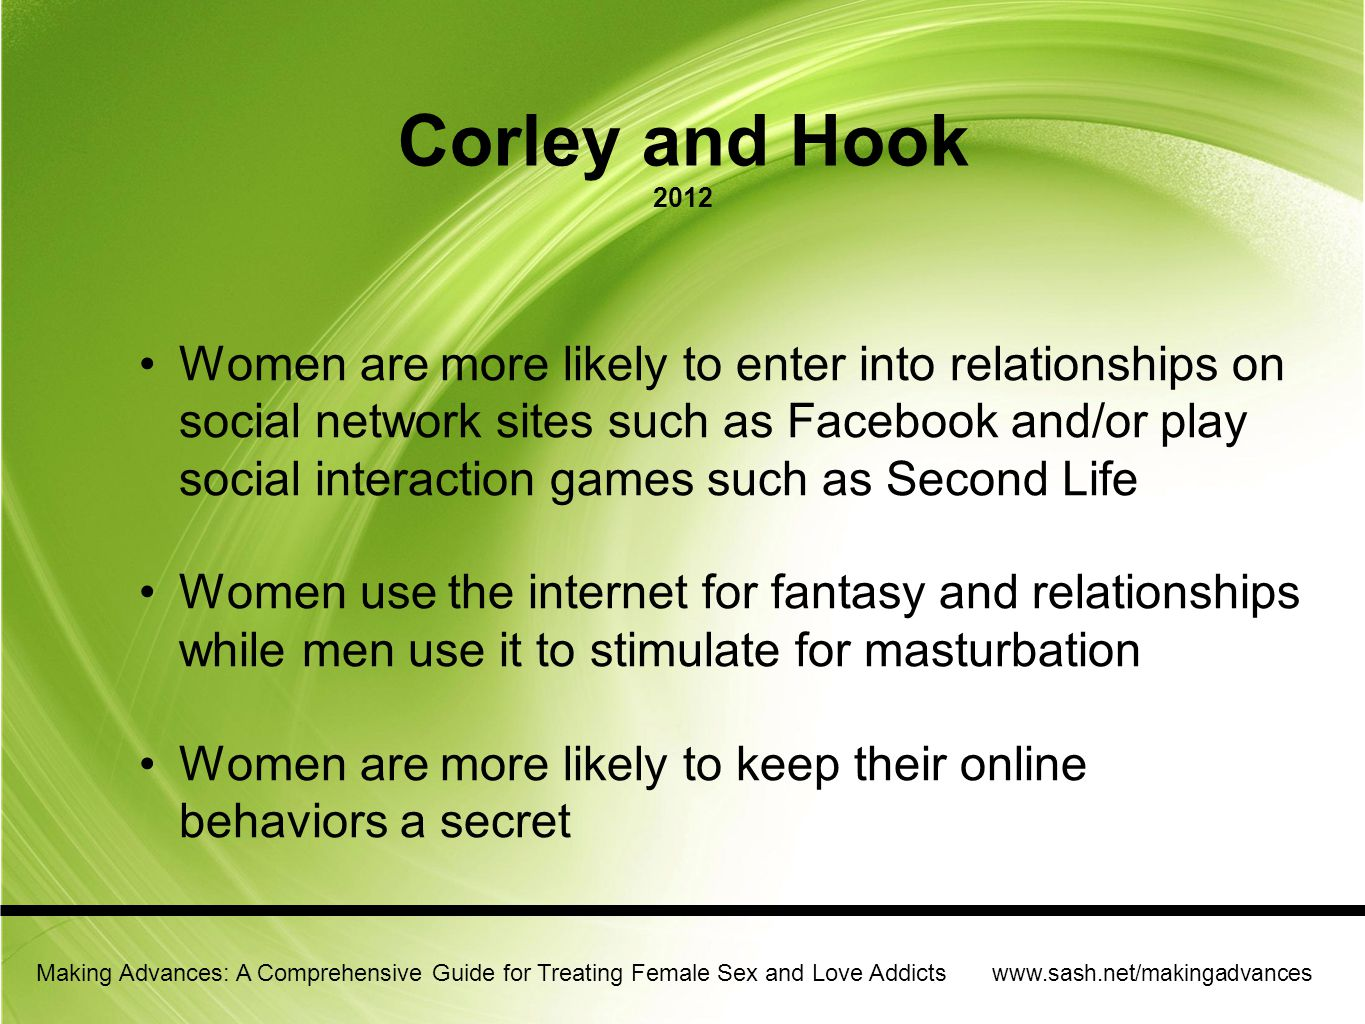 Making Advances: A Comprehensive Guide for Treating Female Sex and Love Addicts www.sash.net/makingadvances Womens Sexuality Survey (Study reported by Corley and Hook 2012) 14% of women in study reported cybersex as problem Women in this group reported more time online and reported more symptoms than the addicted/no cybersex group 79.3% of that group reported frequently visiting porn/and chat rooms 57% of that group reported relying on abusive porn/fantasies to feel aroused